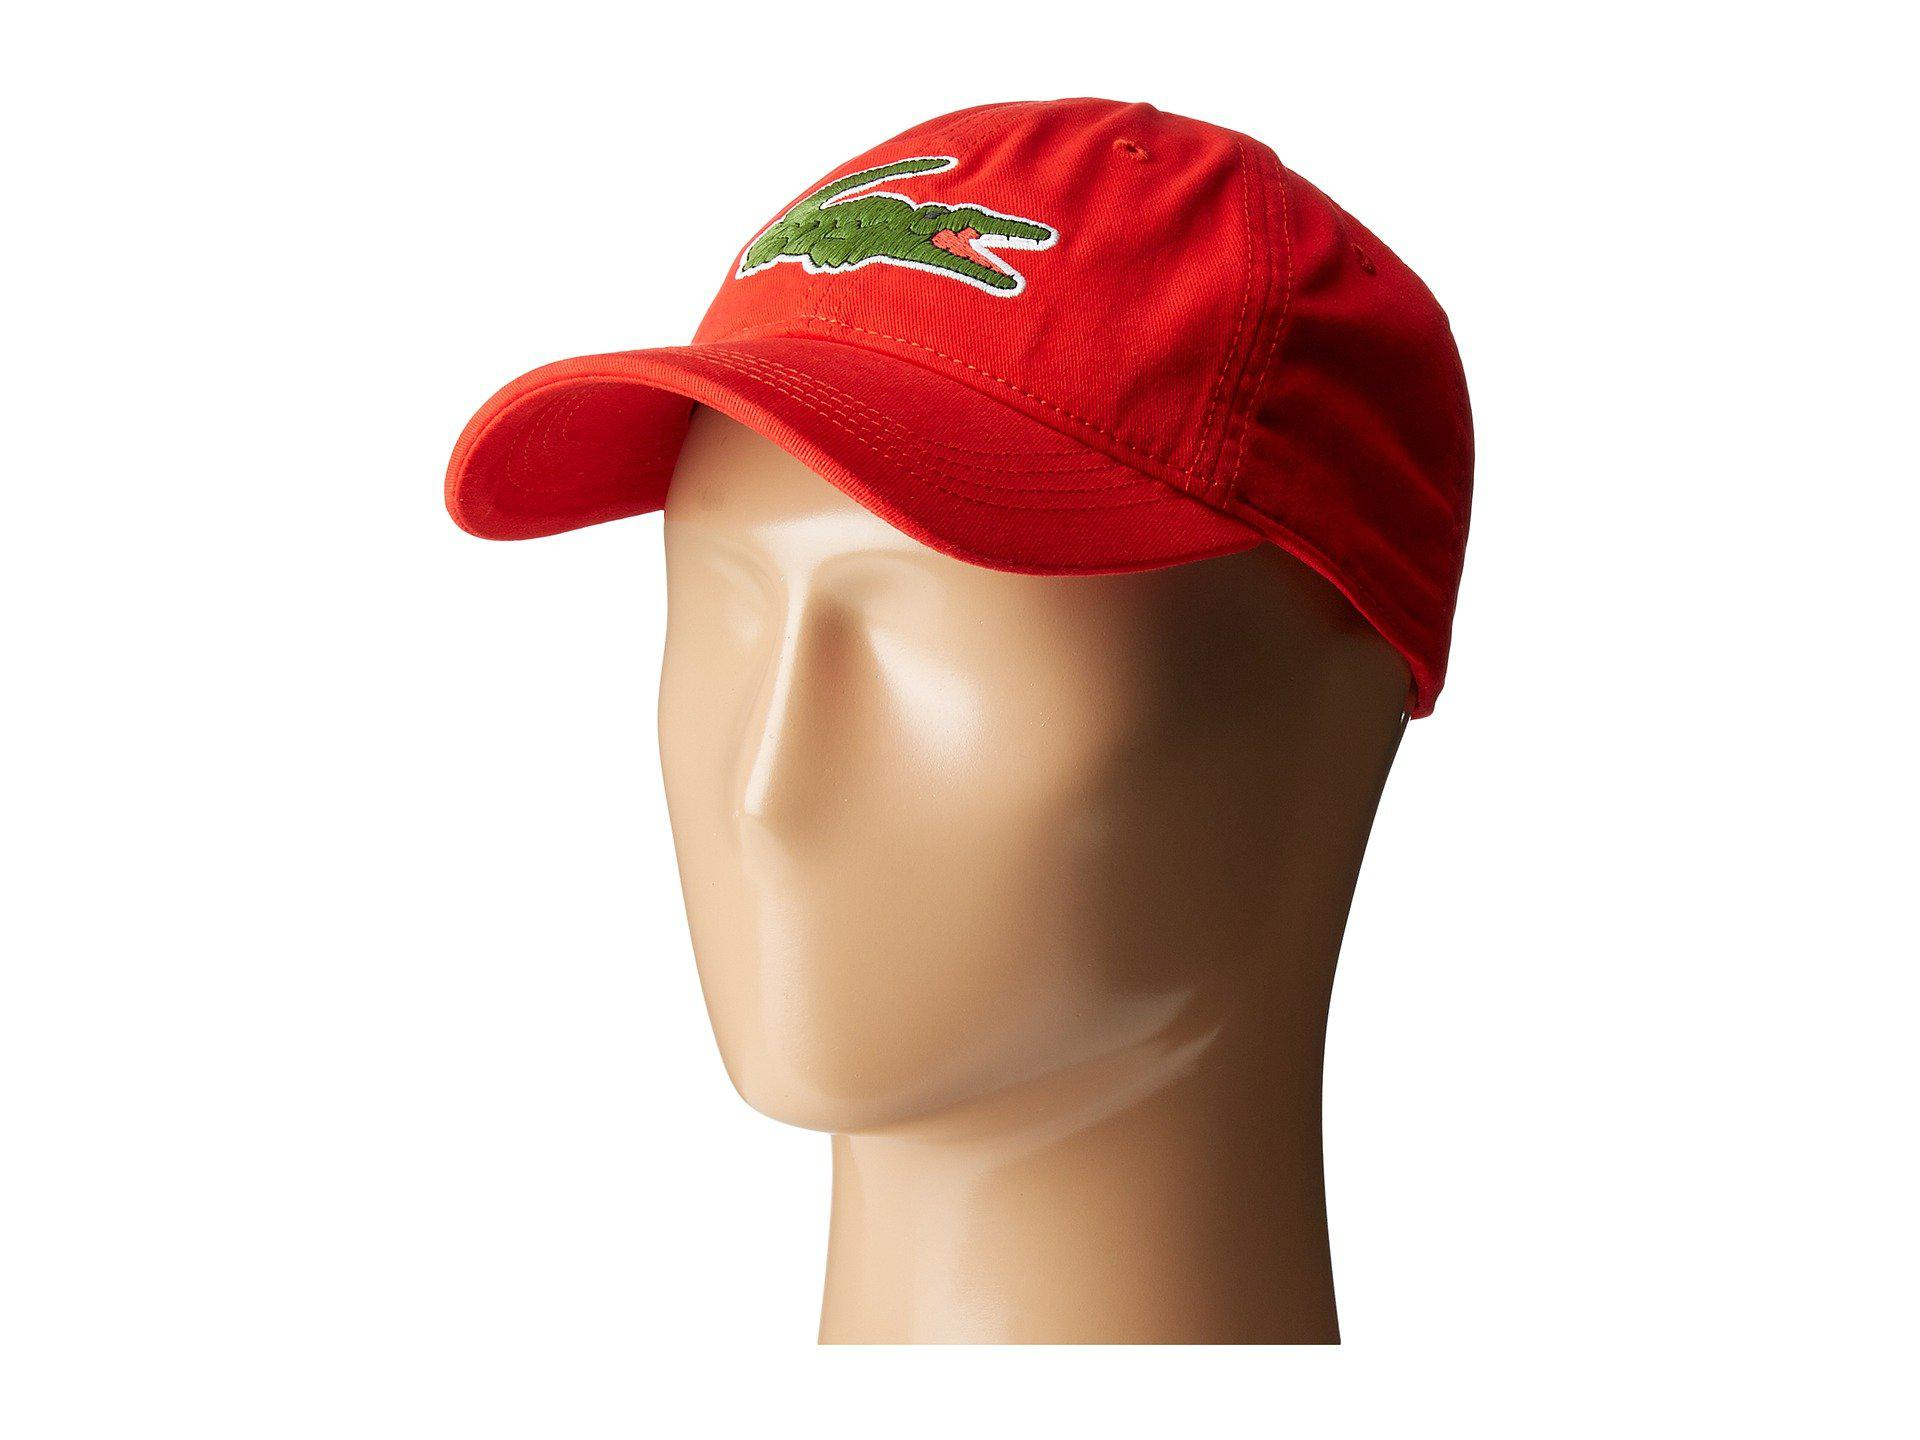 0d9a23af17e Lyst - Lacoste Big Croc Gabardine Cap in Red for Men - Save 30%